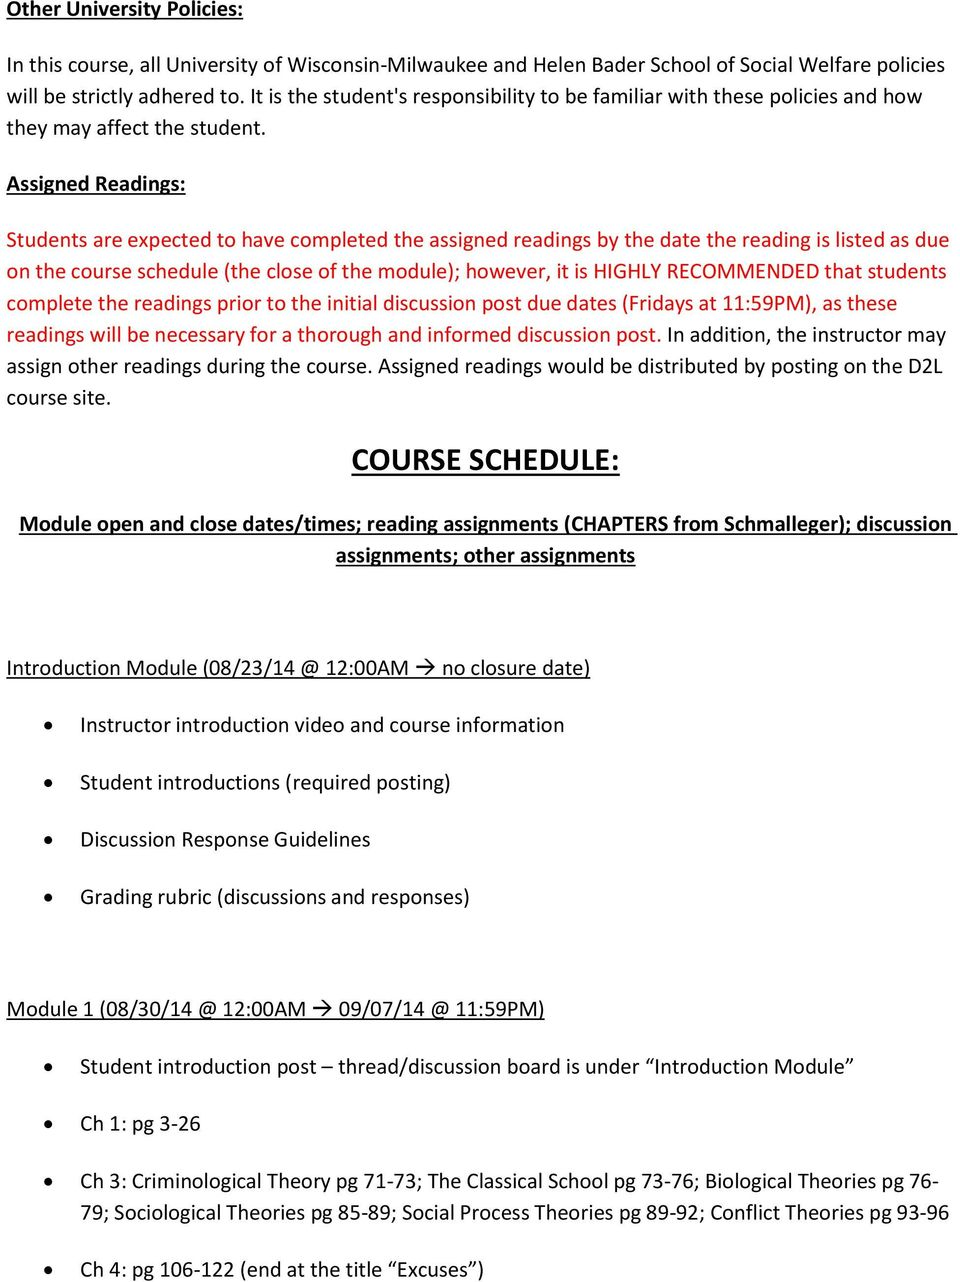 Assigned Readings: Students are expected to have completed the assigned readings by the date the reading is listed as due on the course schedule (the close of the module); however, it is HIGHLY